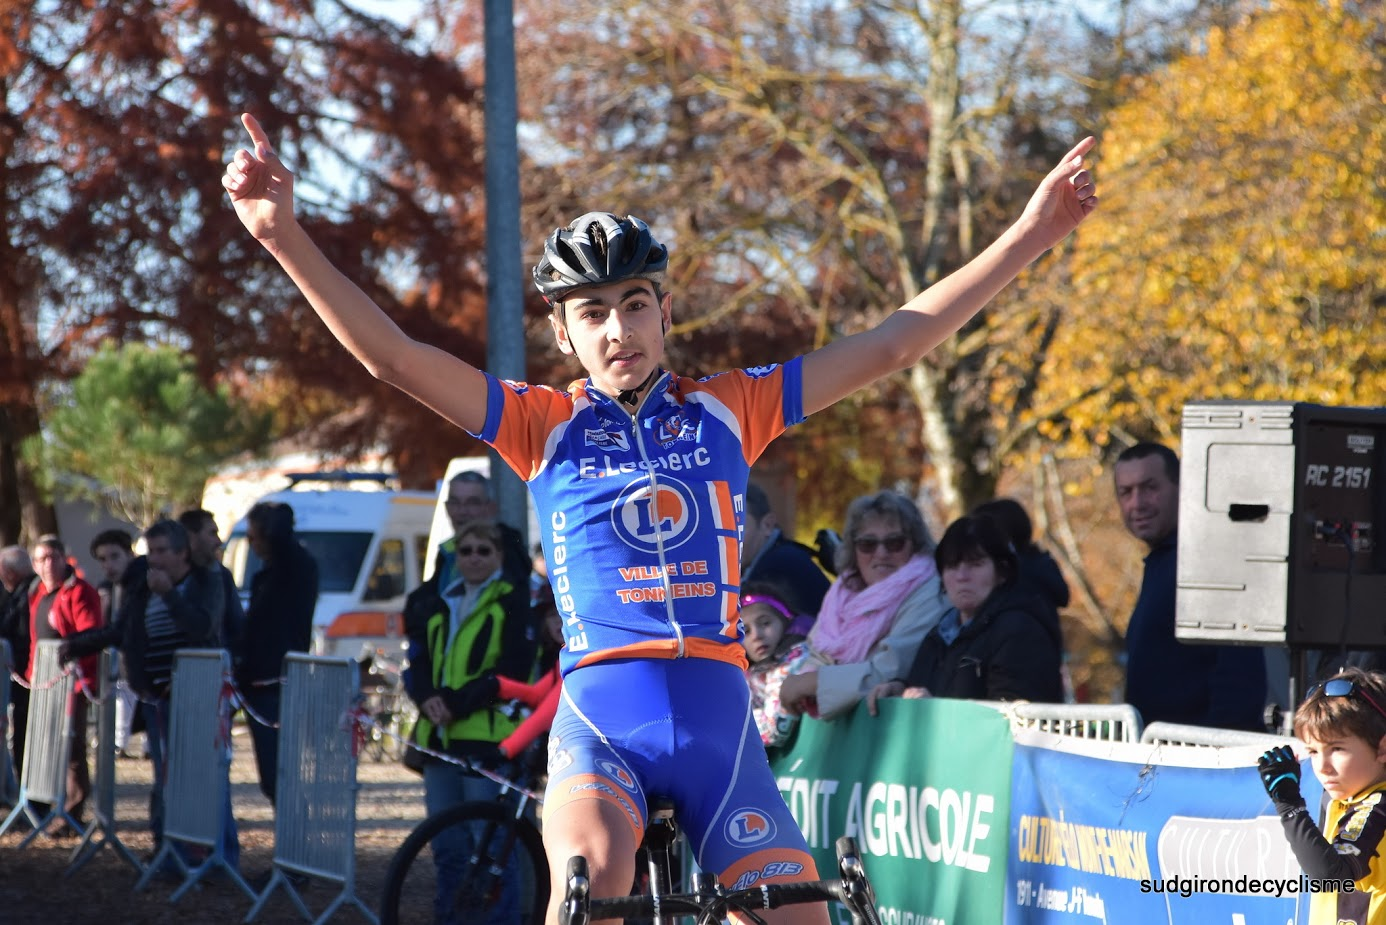 Championnat d'aquitaine cyclo cross cadets juniors dames 2016 116